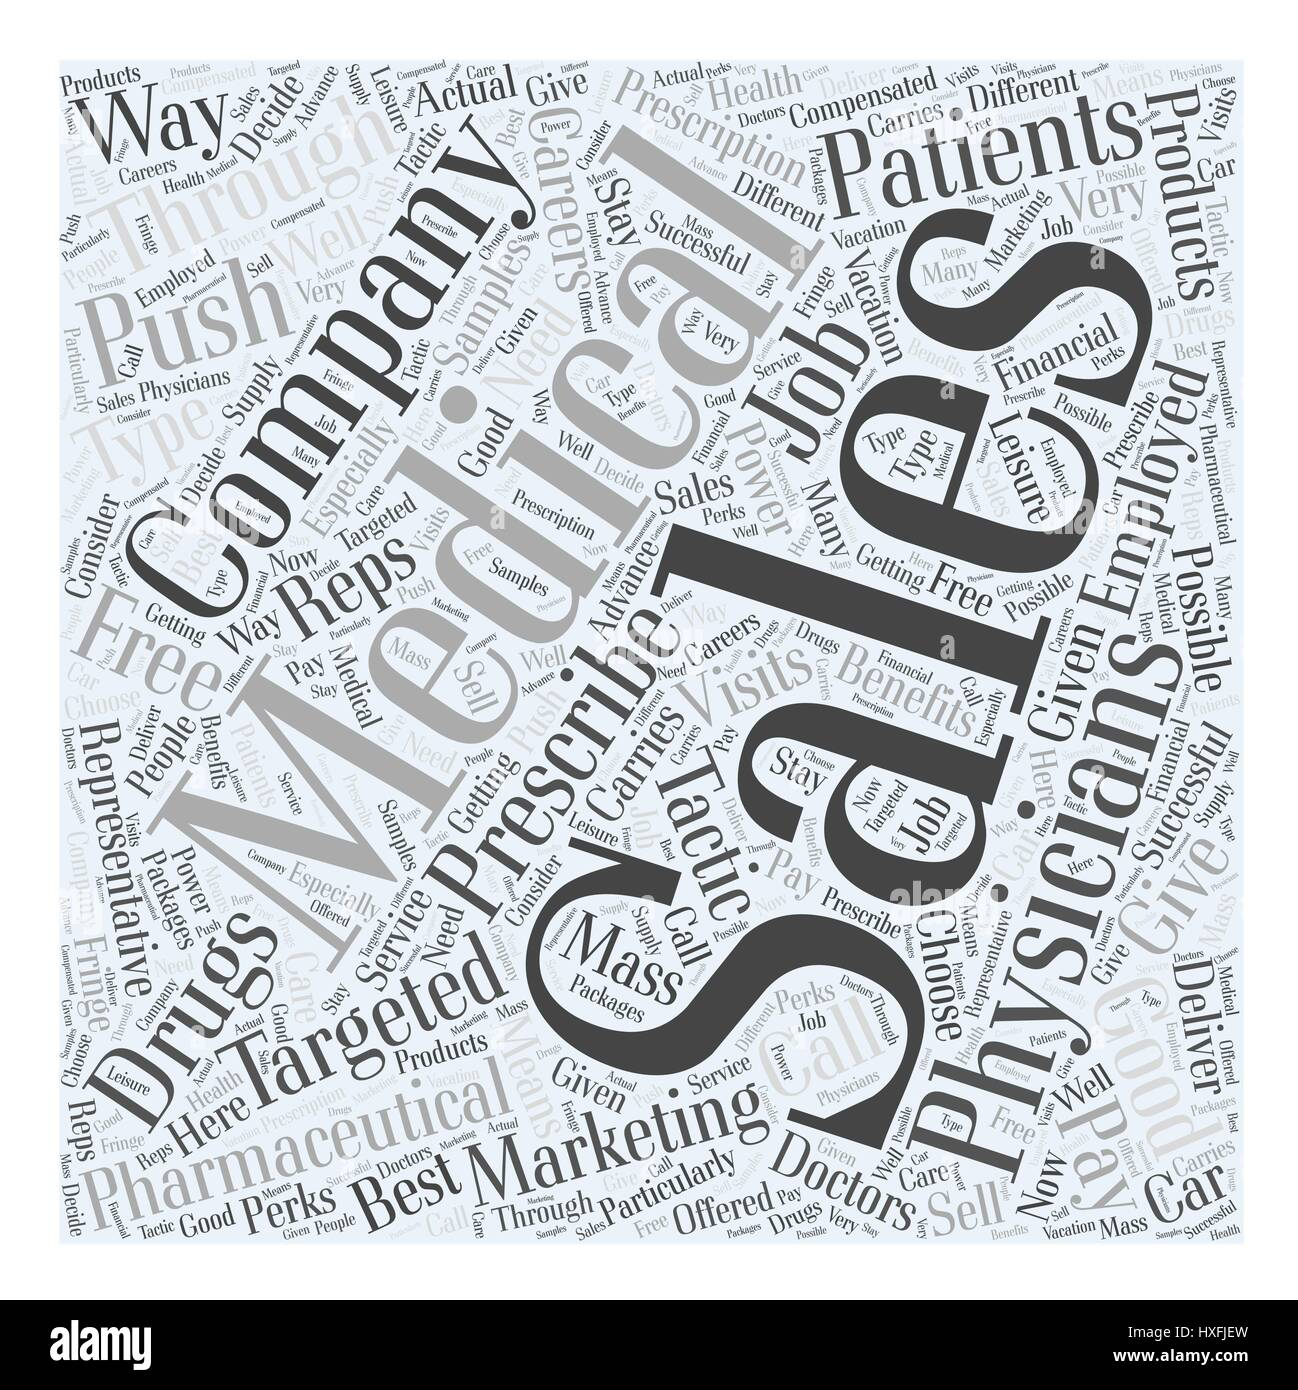 medical supply sales careers word cloud concept stock vector